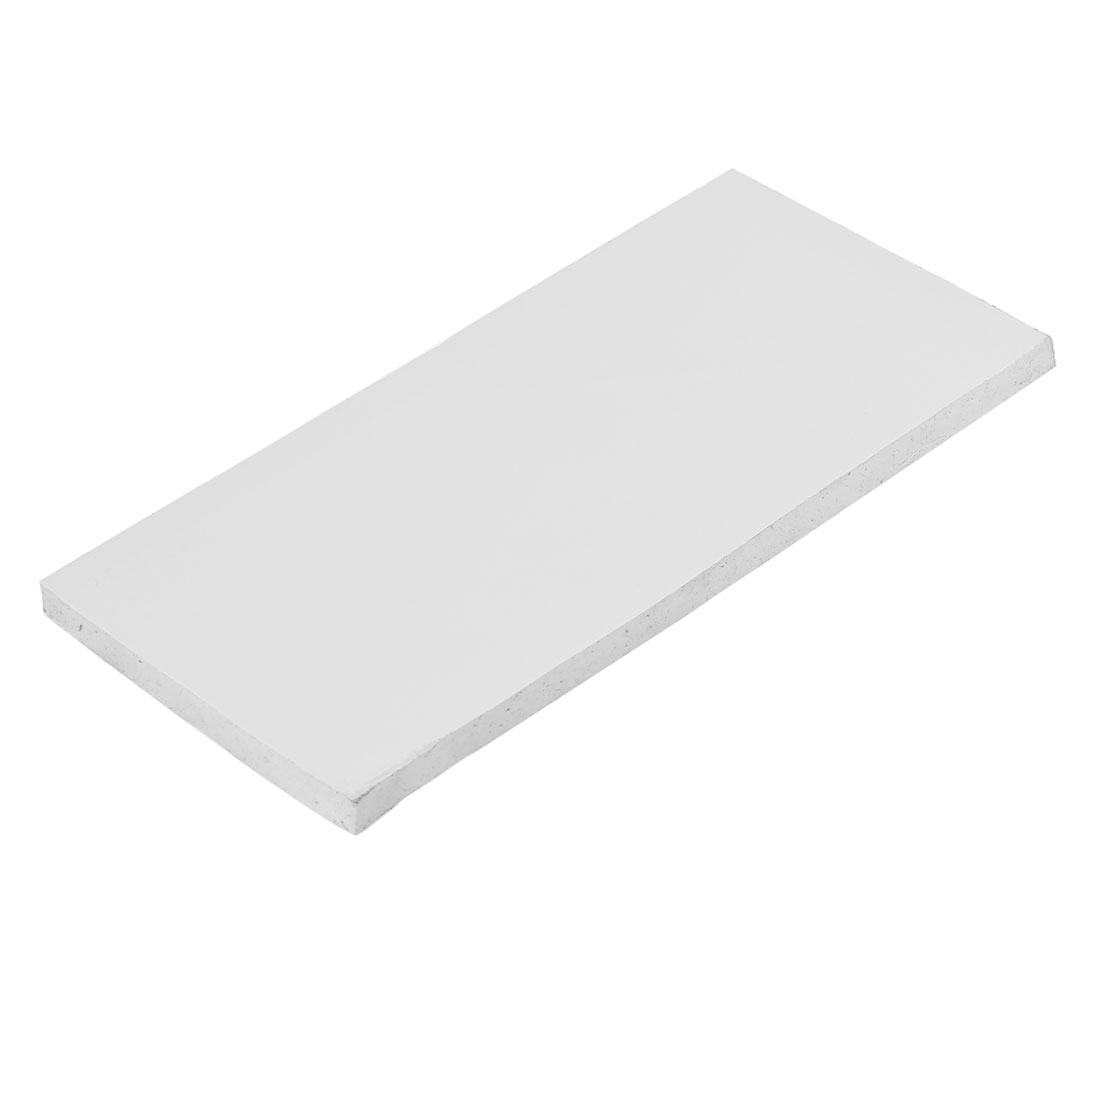 "8mm Thickness Thermal Pad 8"" x 4"" for PC IC Chipset Chip CPU RAM GPU"